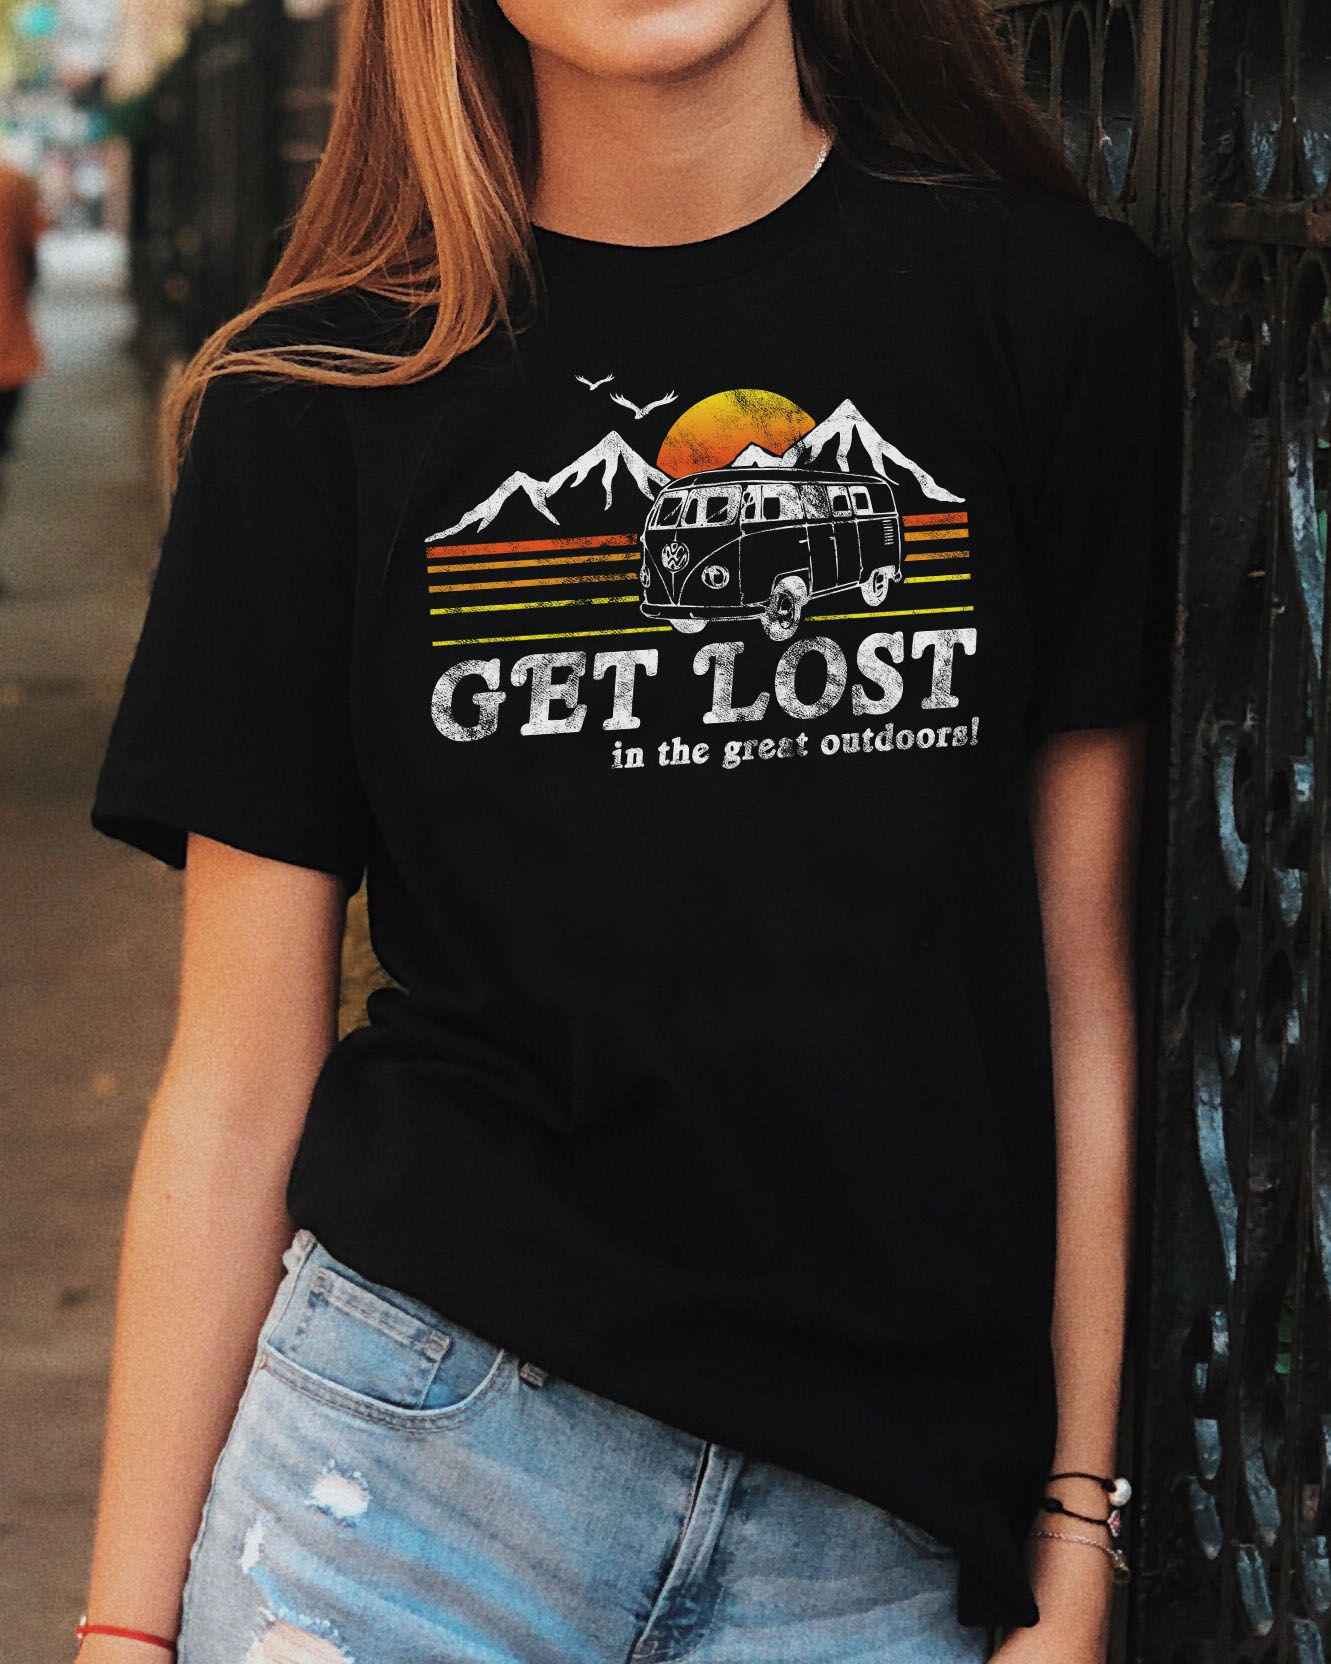 14ed64d9 Get lost in the great outdoors in this distressed, vintage style graphic tee  featuring a